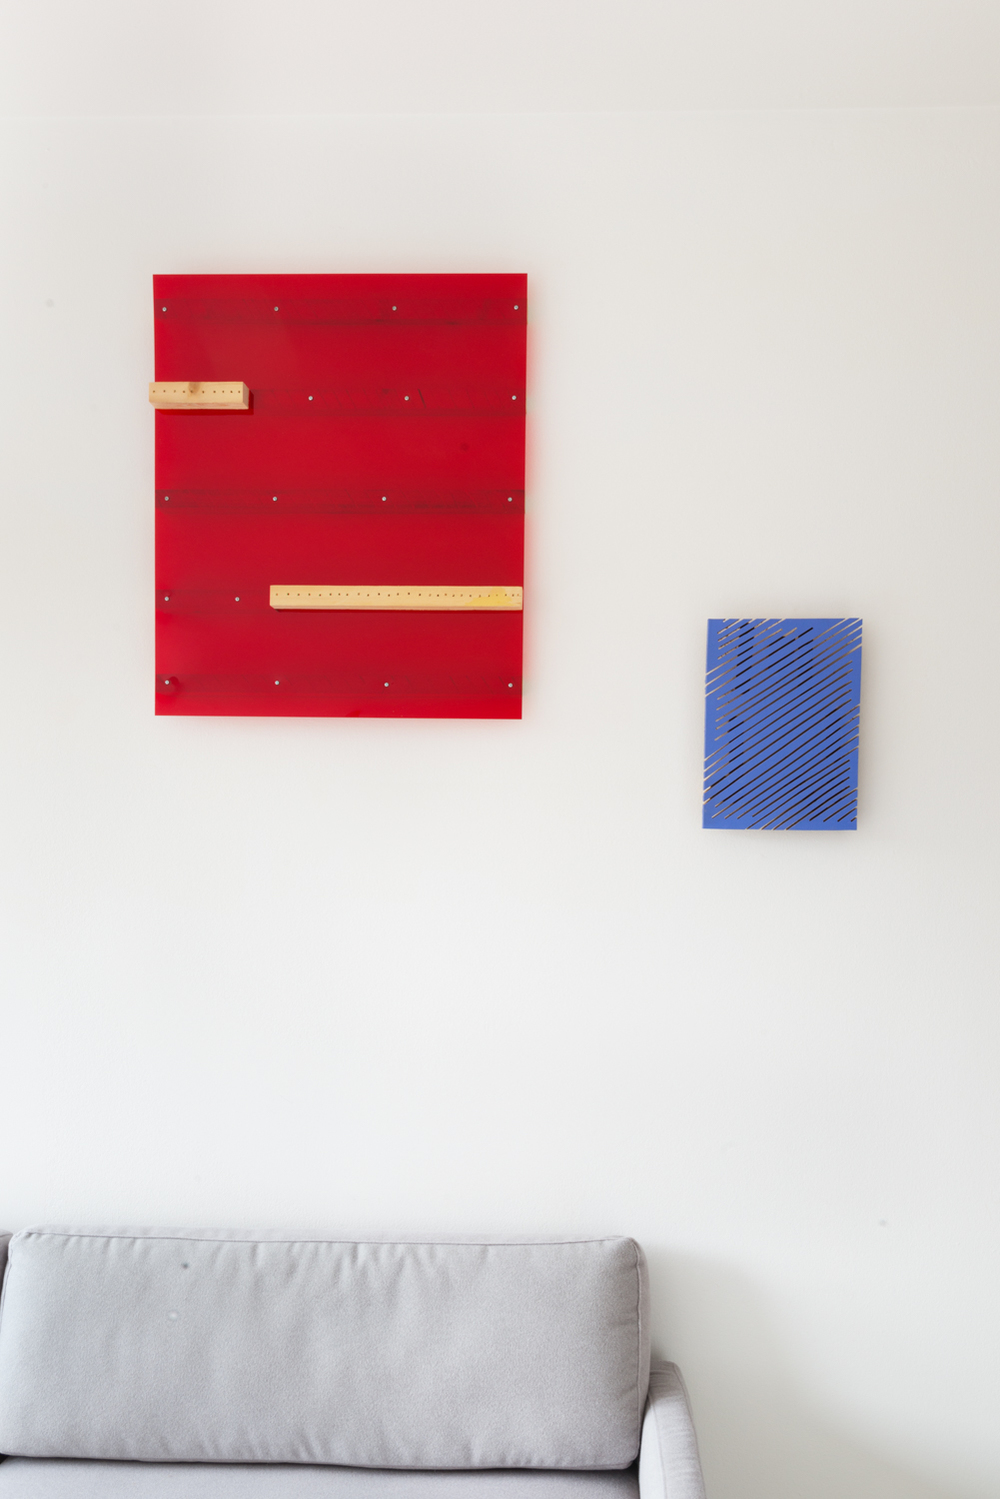 Kishio Suga   2015   Shane Campbell Gallery, Chicago   Installation View